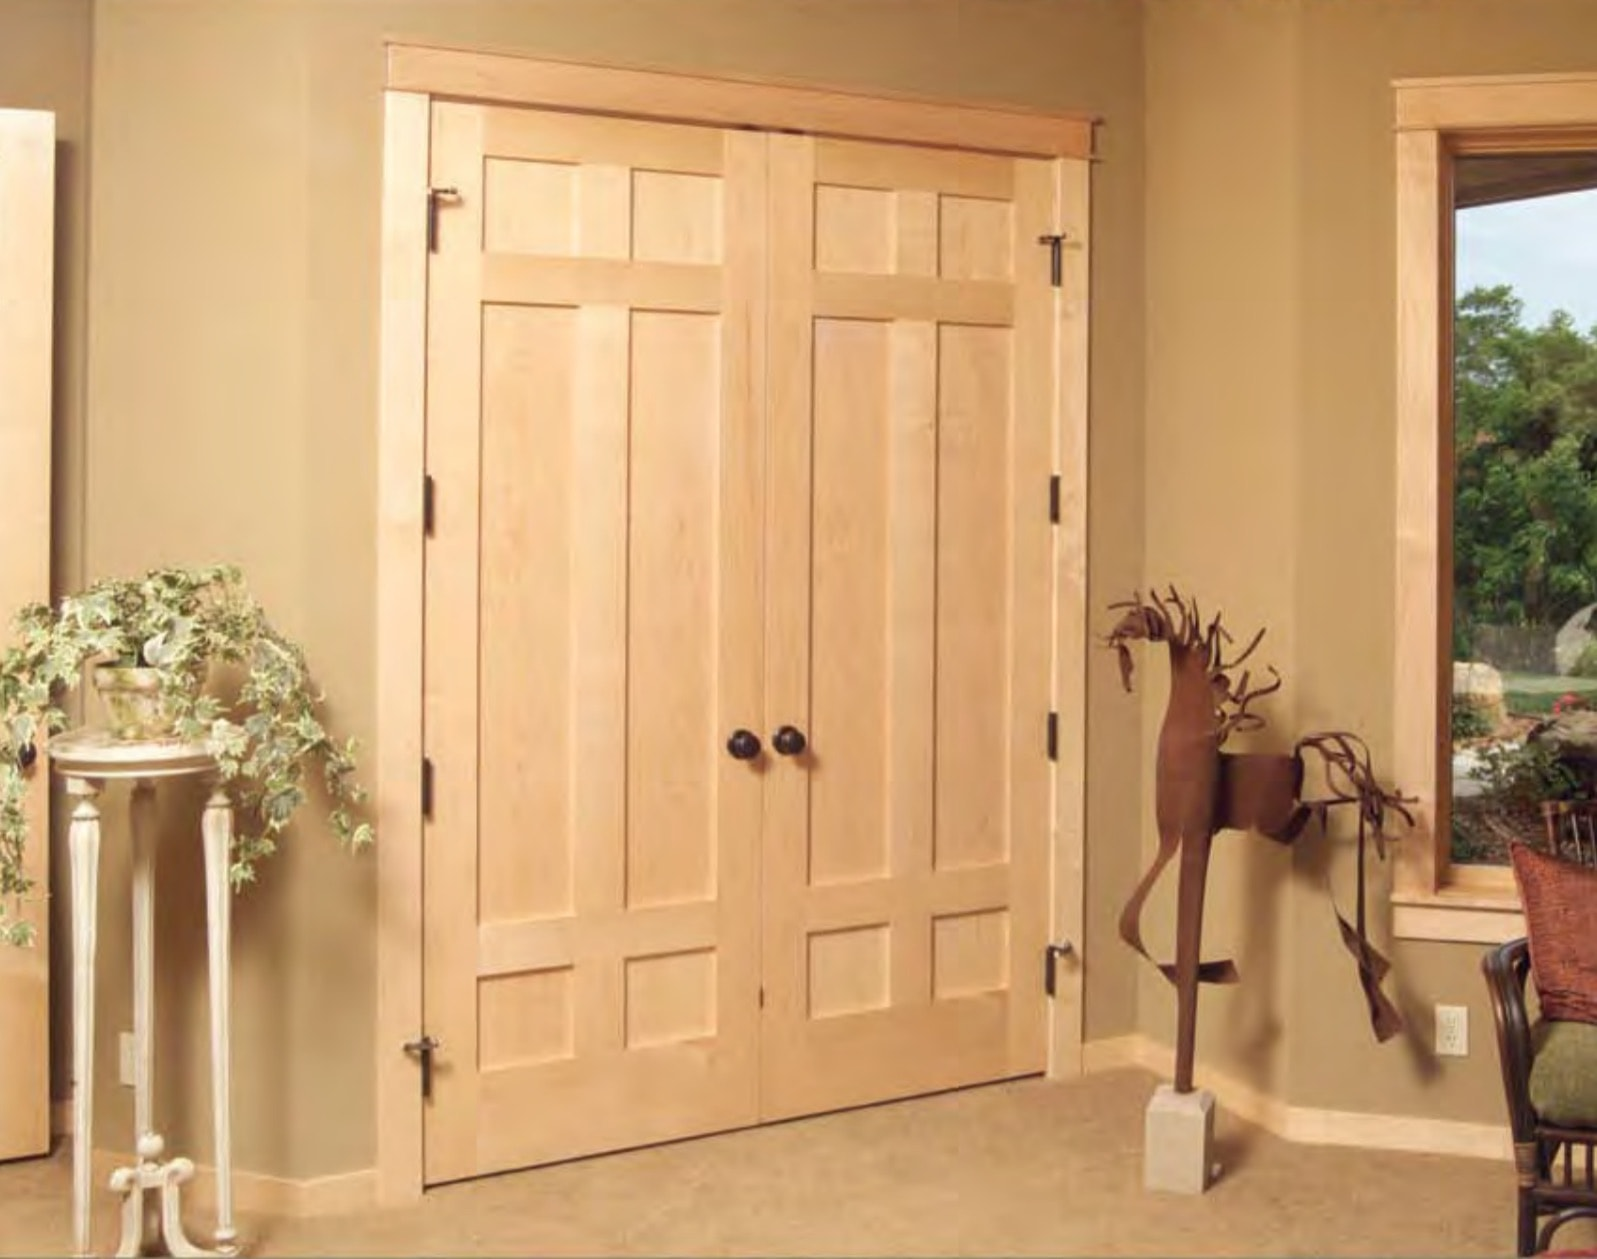 SaveEnlarge · Stallion Door ... & Stallion Doors - Sanfranciscolife